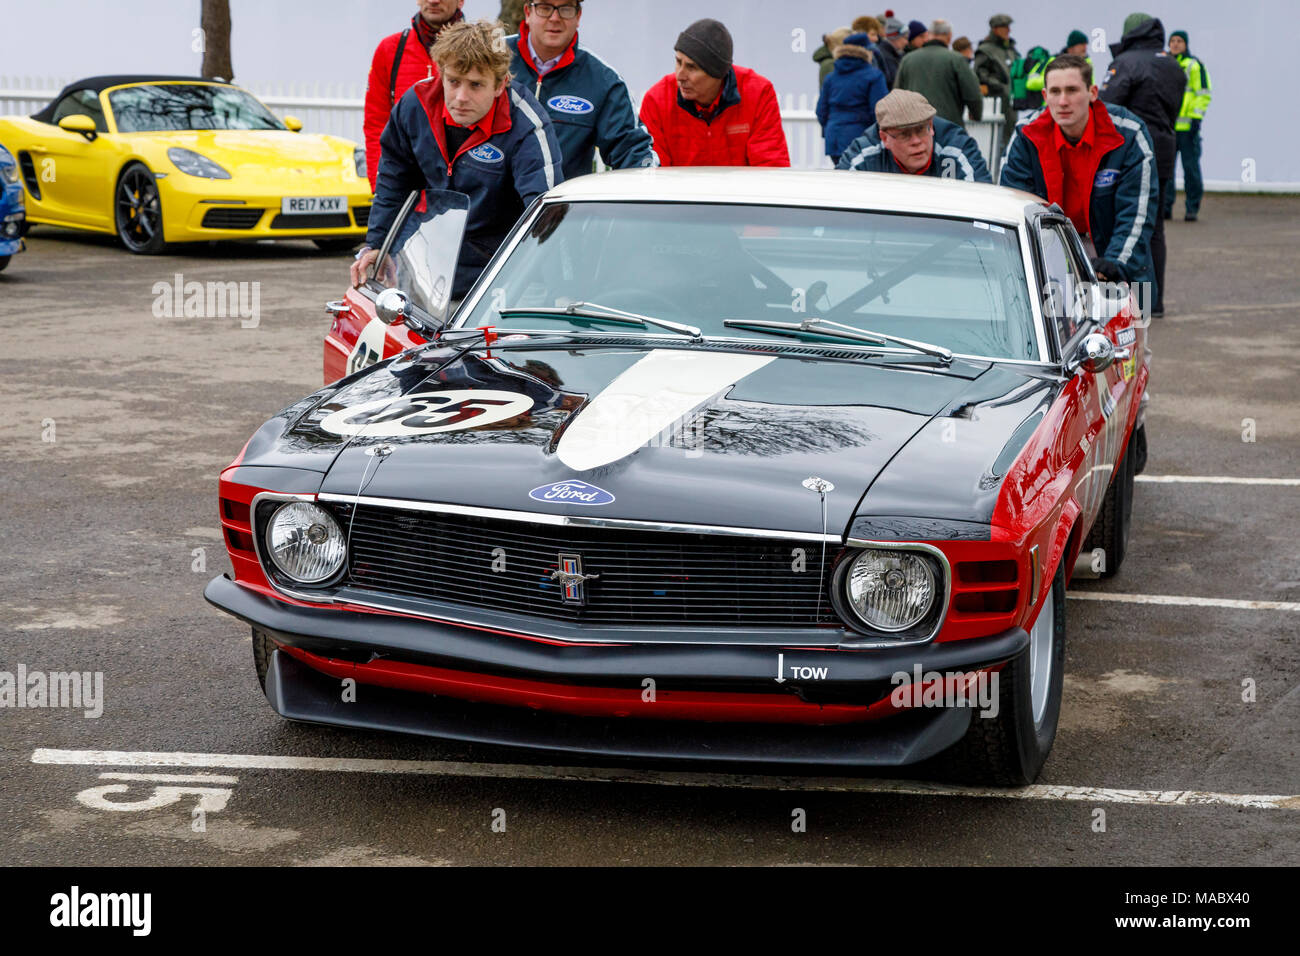 Ford Mustang Boss 302 Stock Photos 1969 Of Davies Plato In The Paddock Before Gerry Marshall